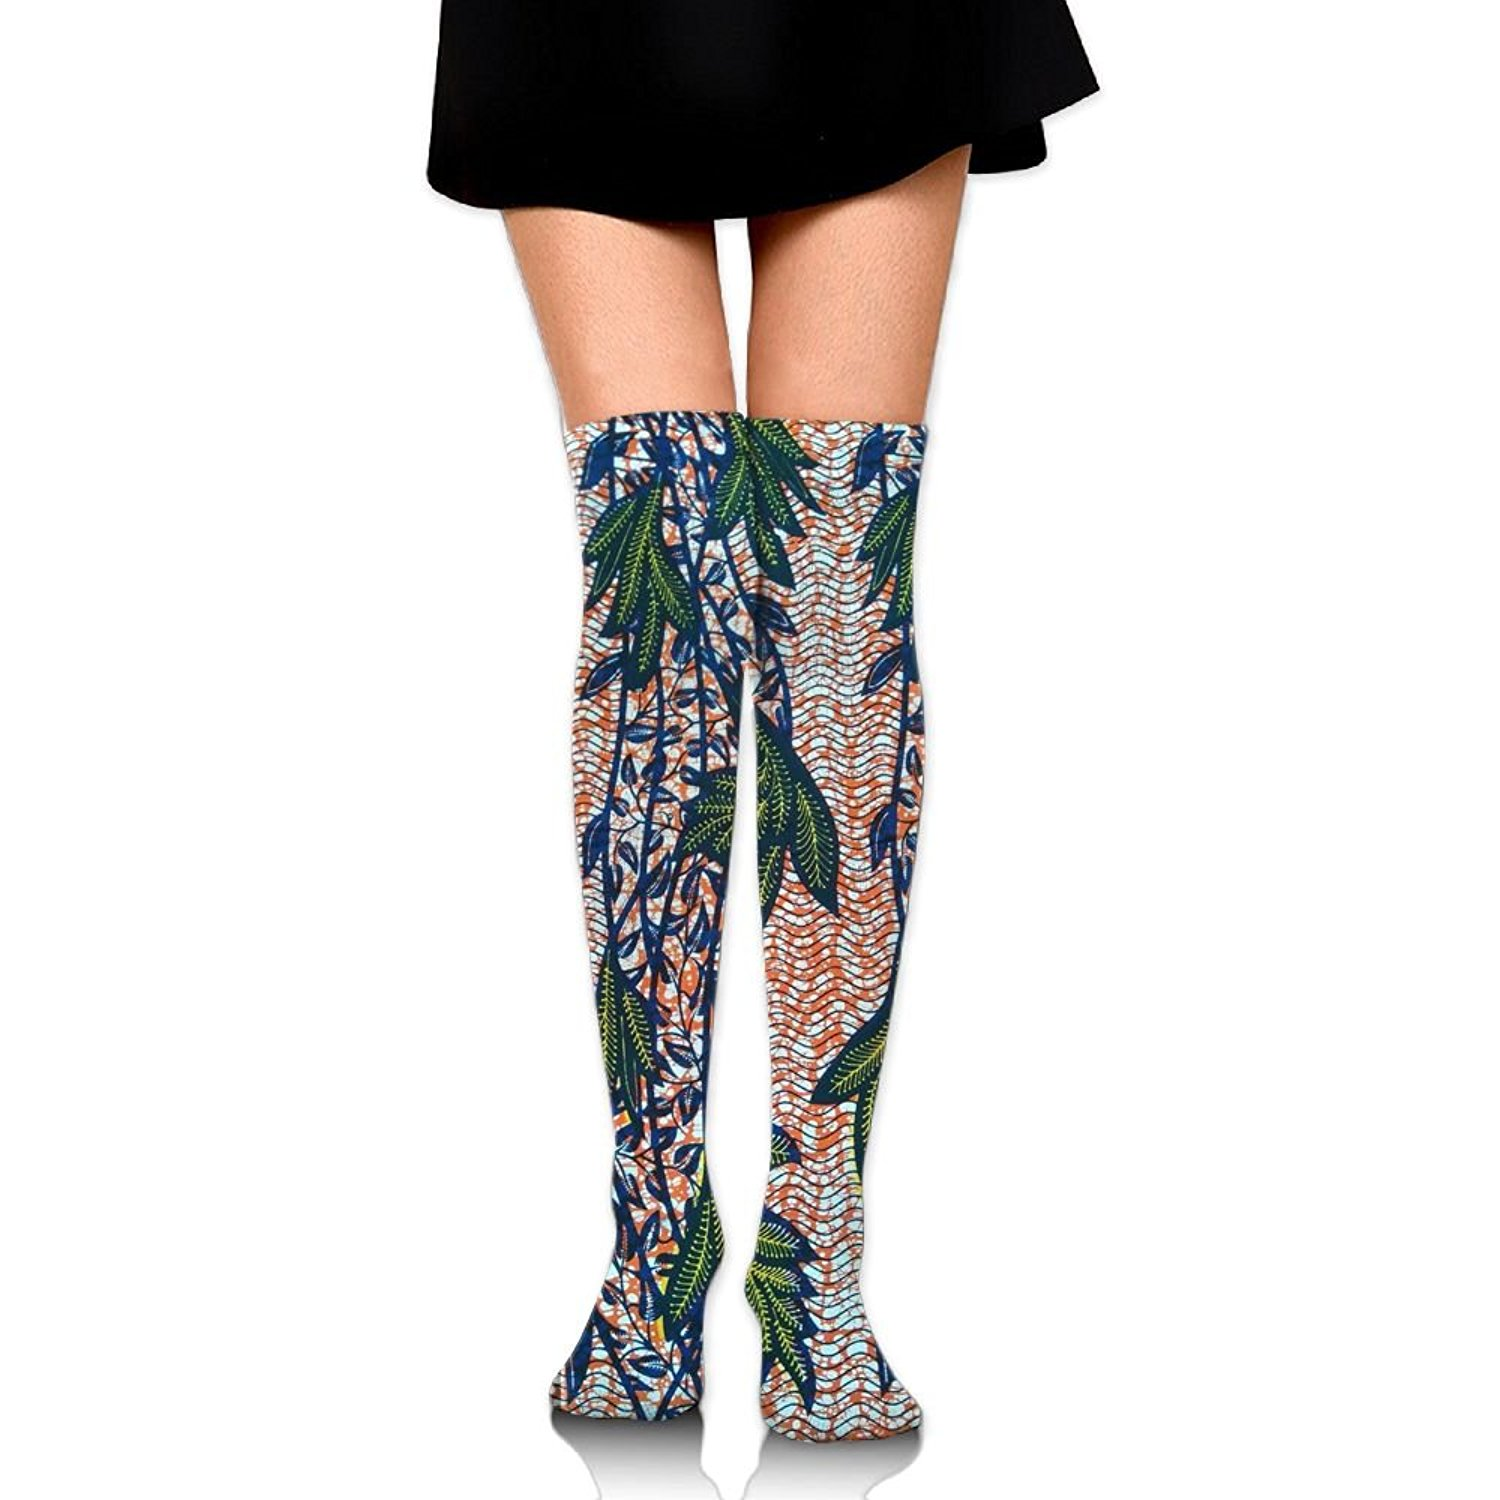 Zaqxsw African Stripe Women Cool Thigh High Socks Thermal Socks For Ladies